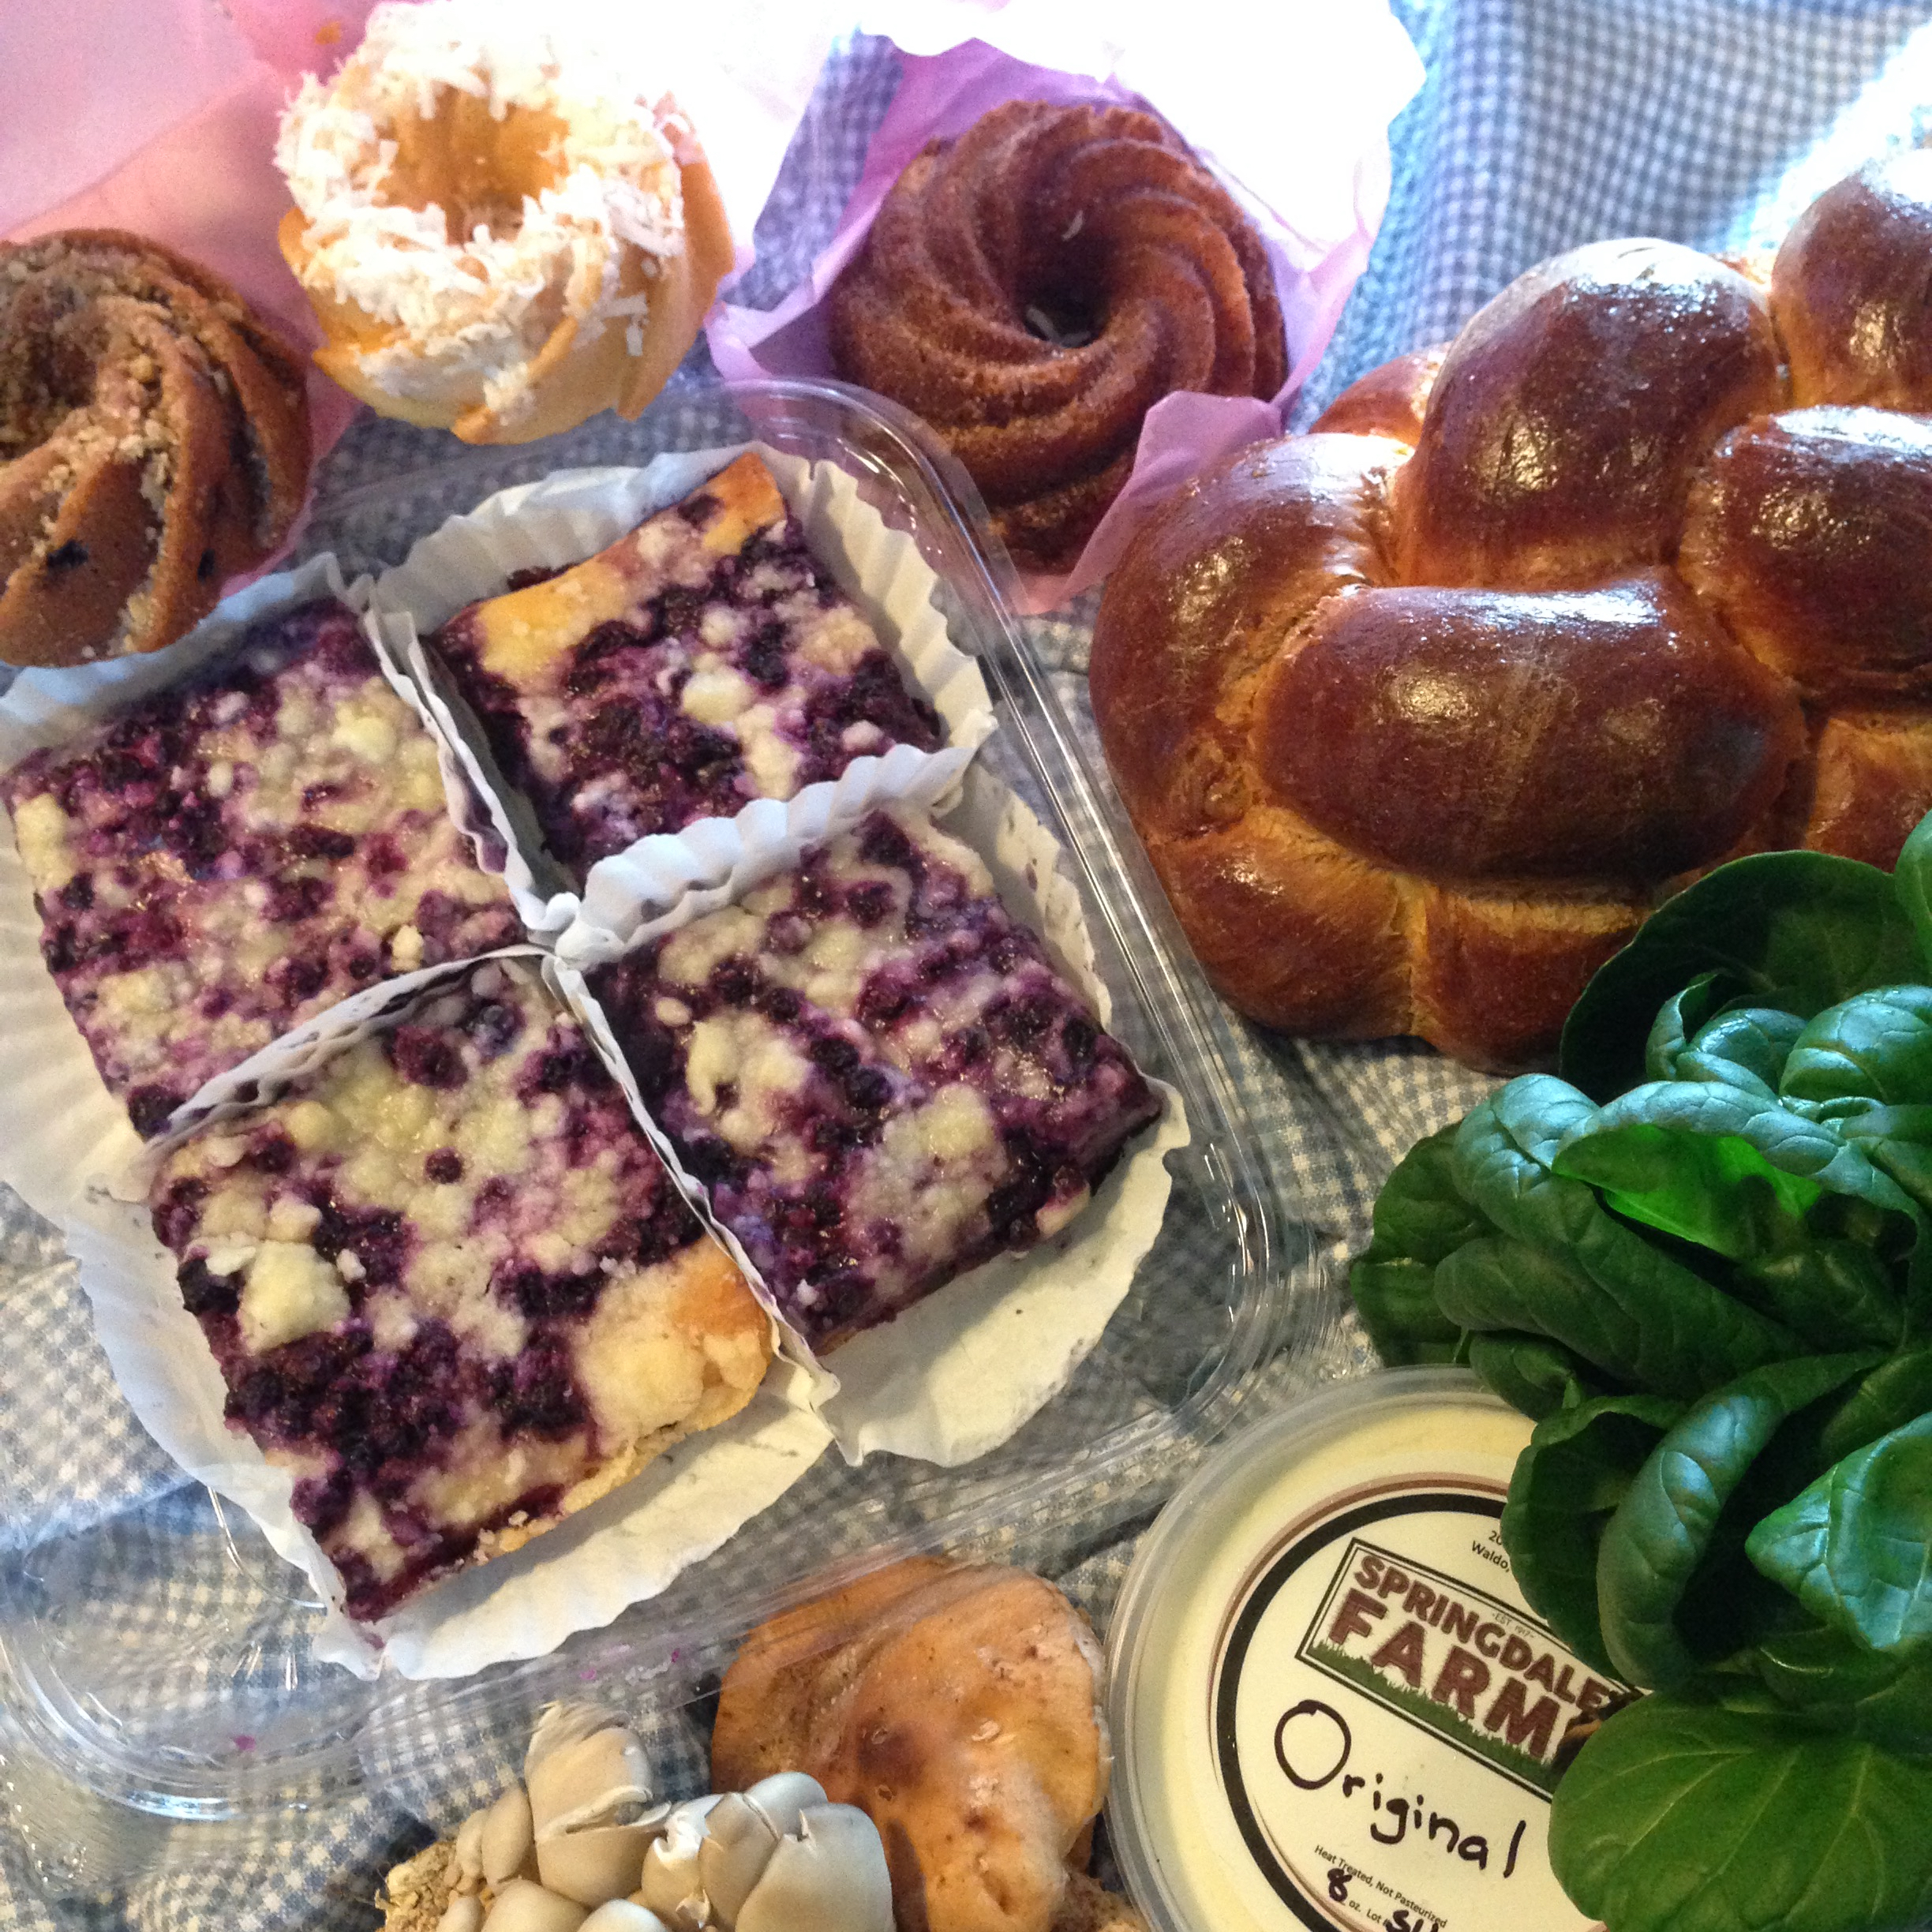 Farmers Market Finds: blueberry kuchen, mini bundt cakes coconut blueberry and cinnamon, oyster mushrooms, shiitake mushrooms, cream cheese, bok choy, challah bread